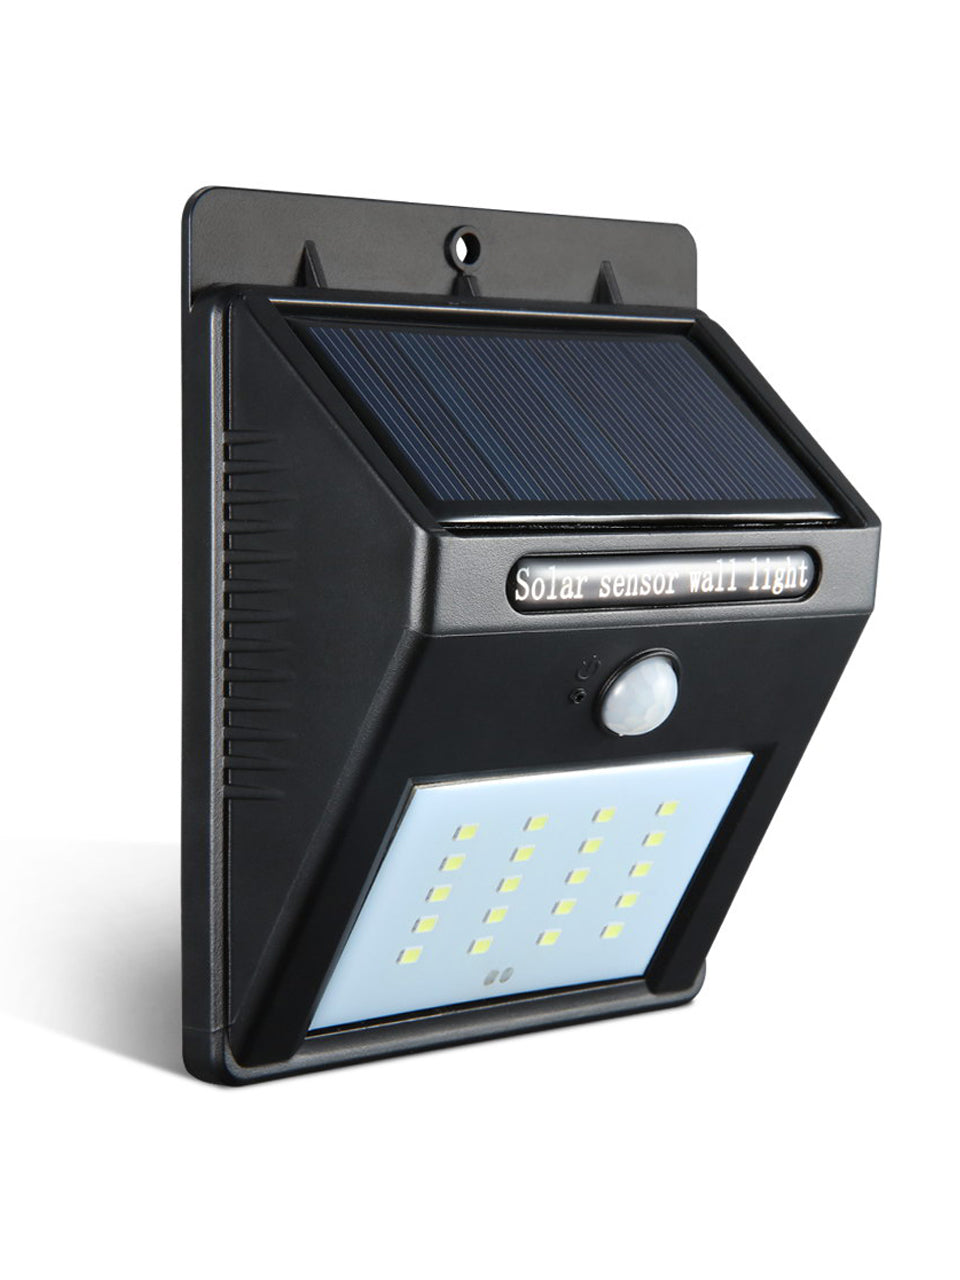 20 LED Solar Powered Motion Sensor Lights - Solar Statues